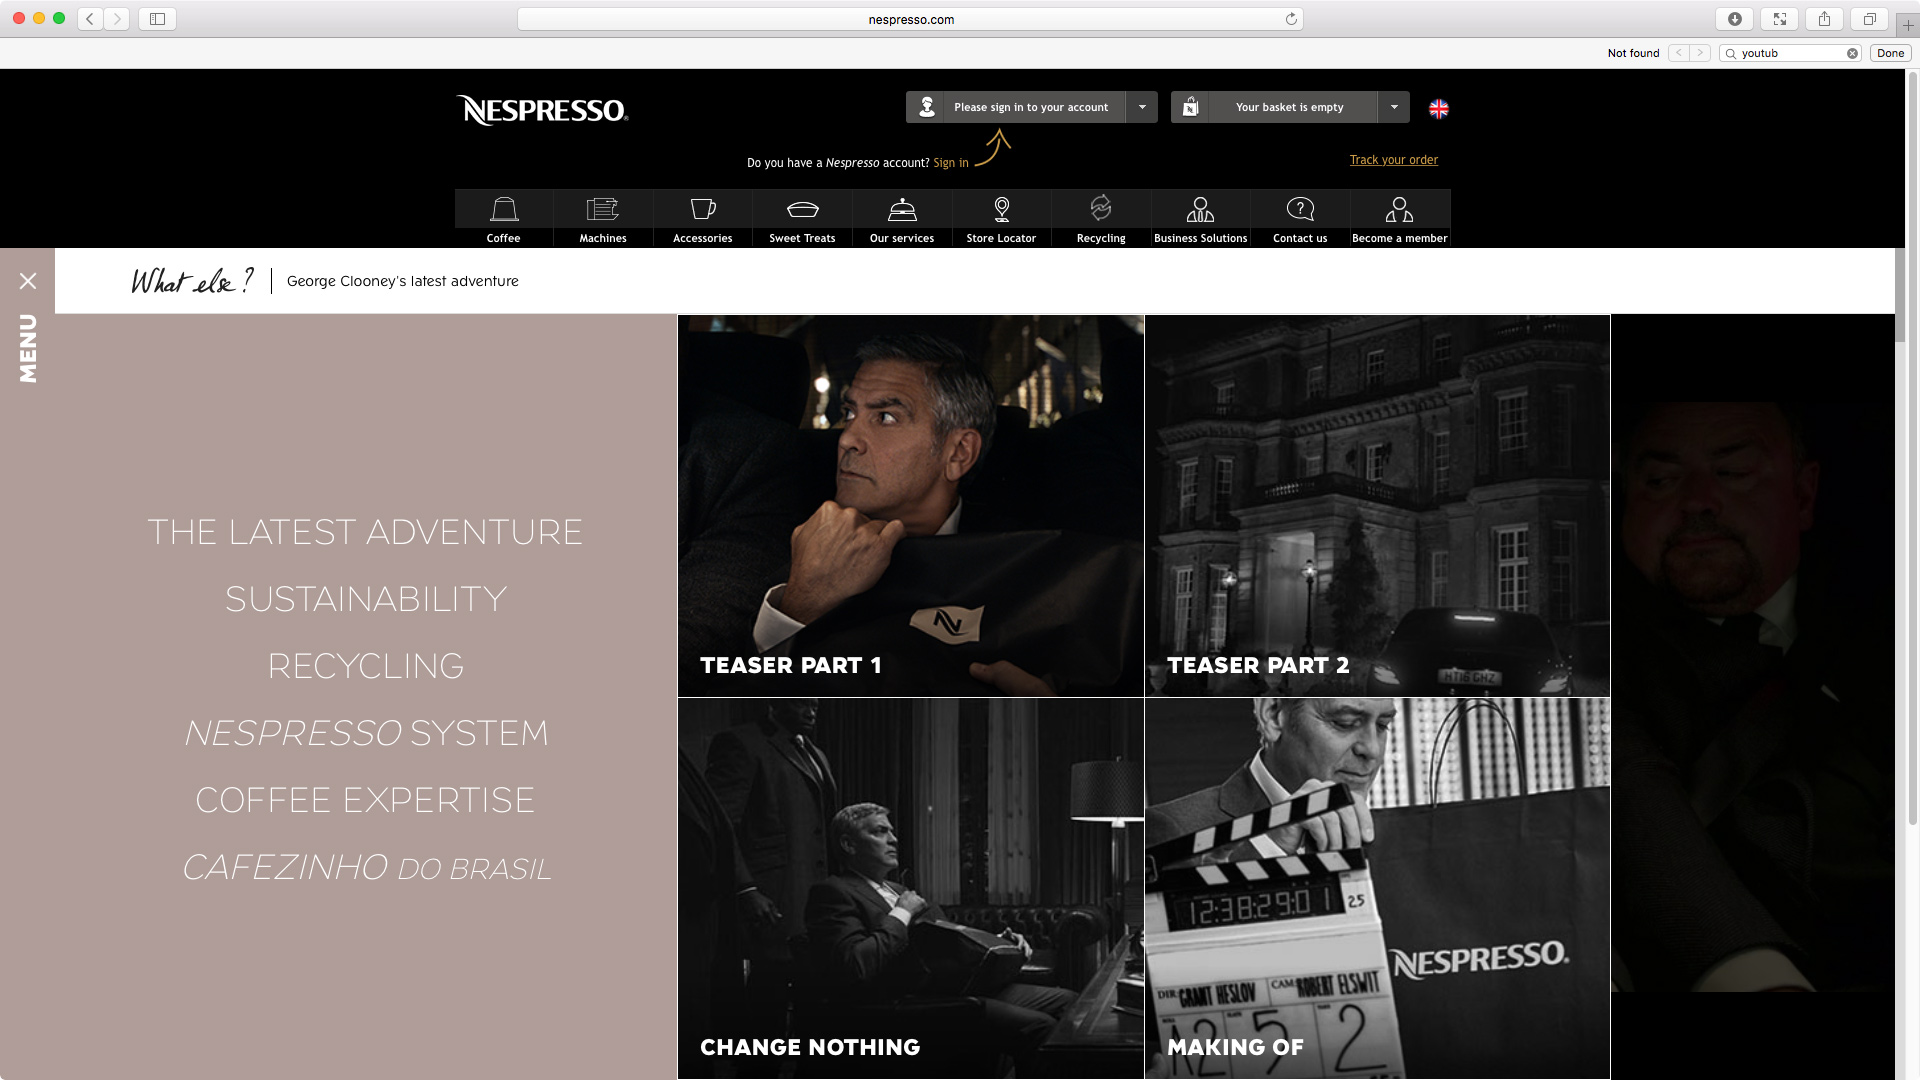 """Nespresso: """"Change Nothing"""" is a global website design to tease the new George Clooney campaign. I was responsible for the creative on the website, both art direction and copywriting."""